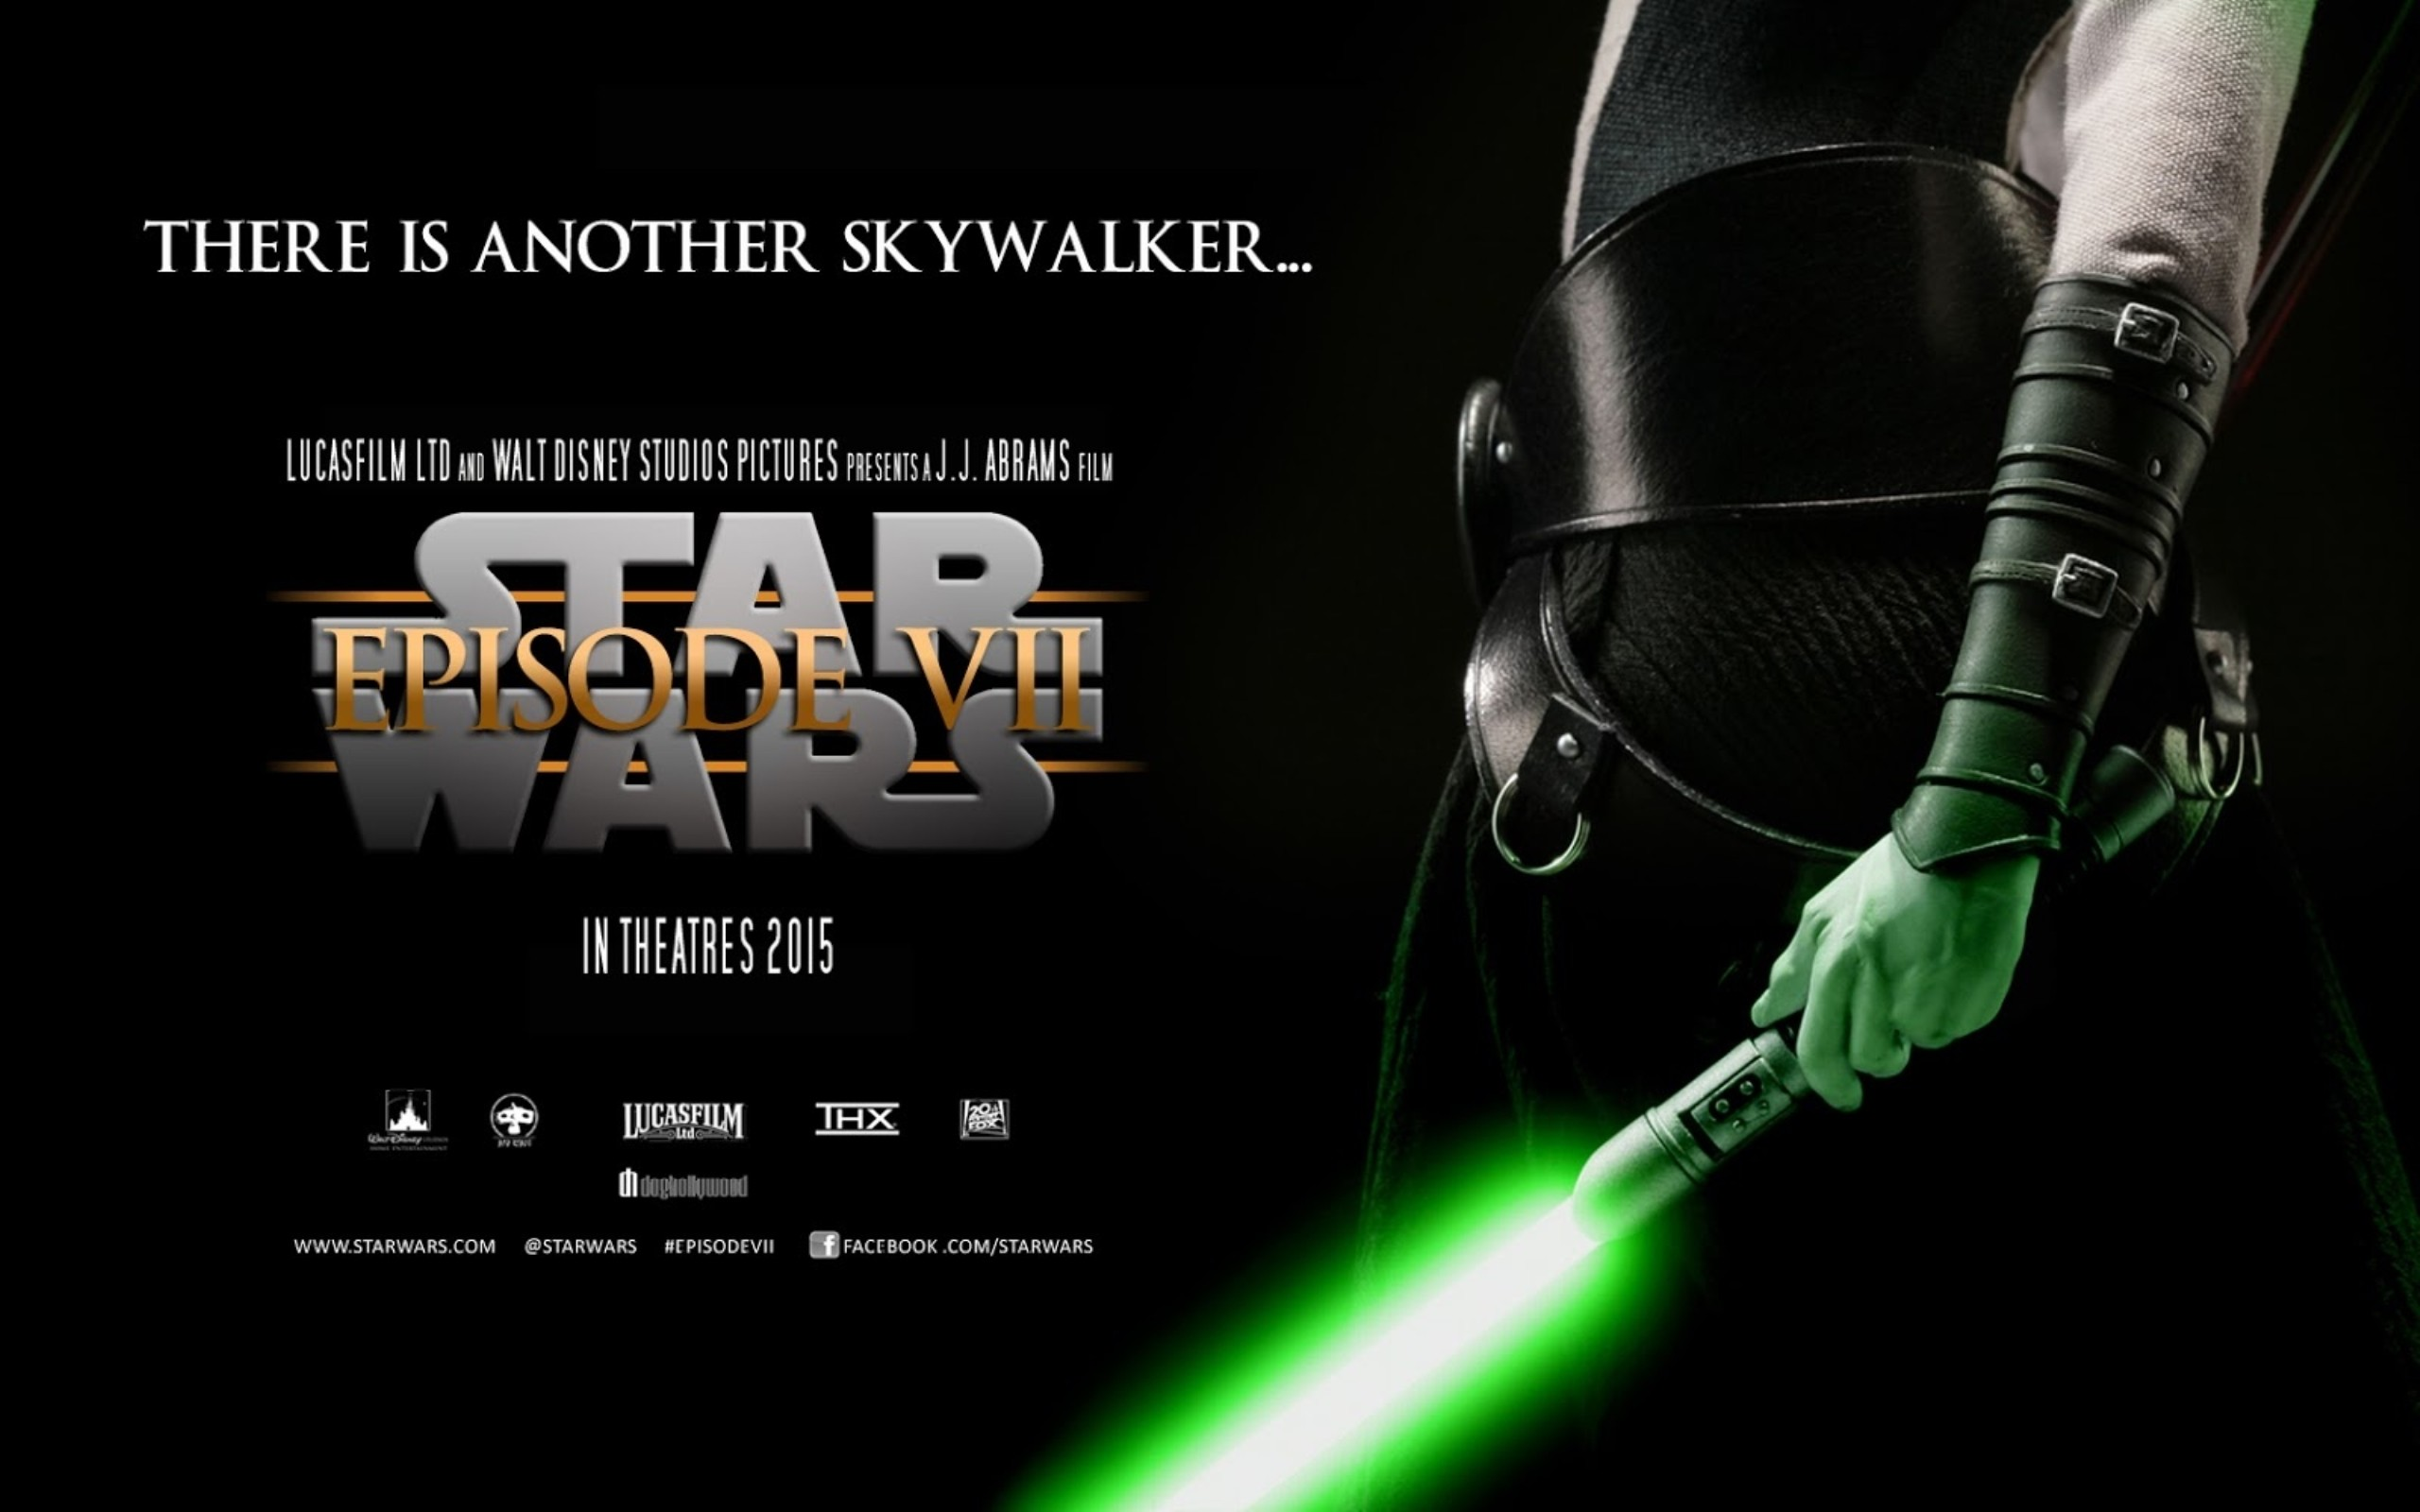 Star Wars Dual Monitor Wallpaper Download Free Hd Star Wars Wallpapers Episode 9 2560x1600 Download Hd Wallpaper Wallpapertip